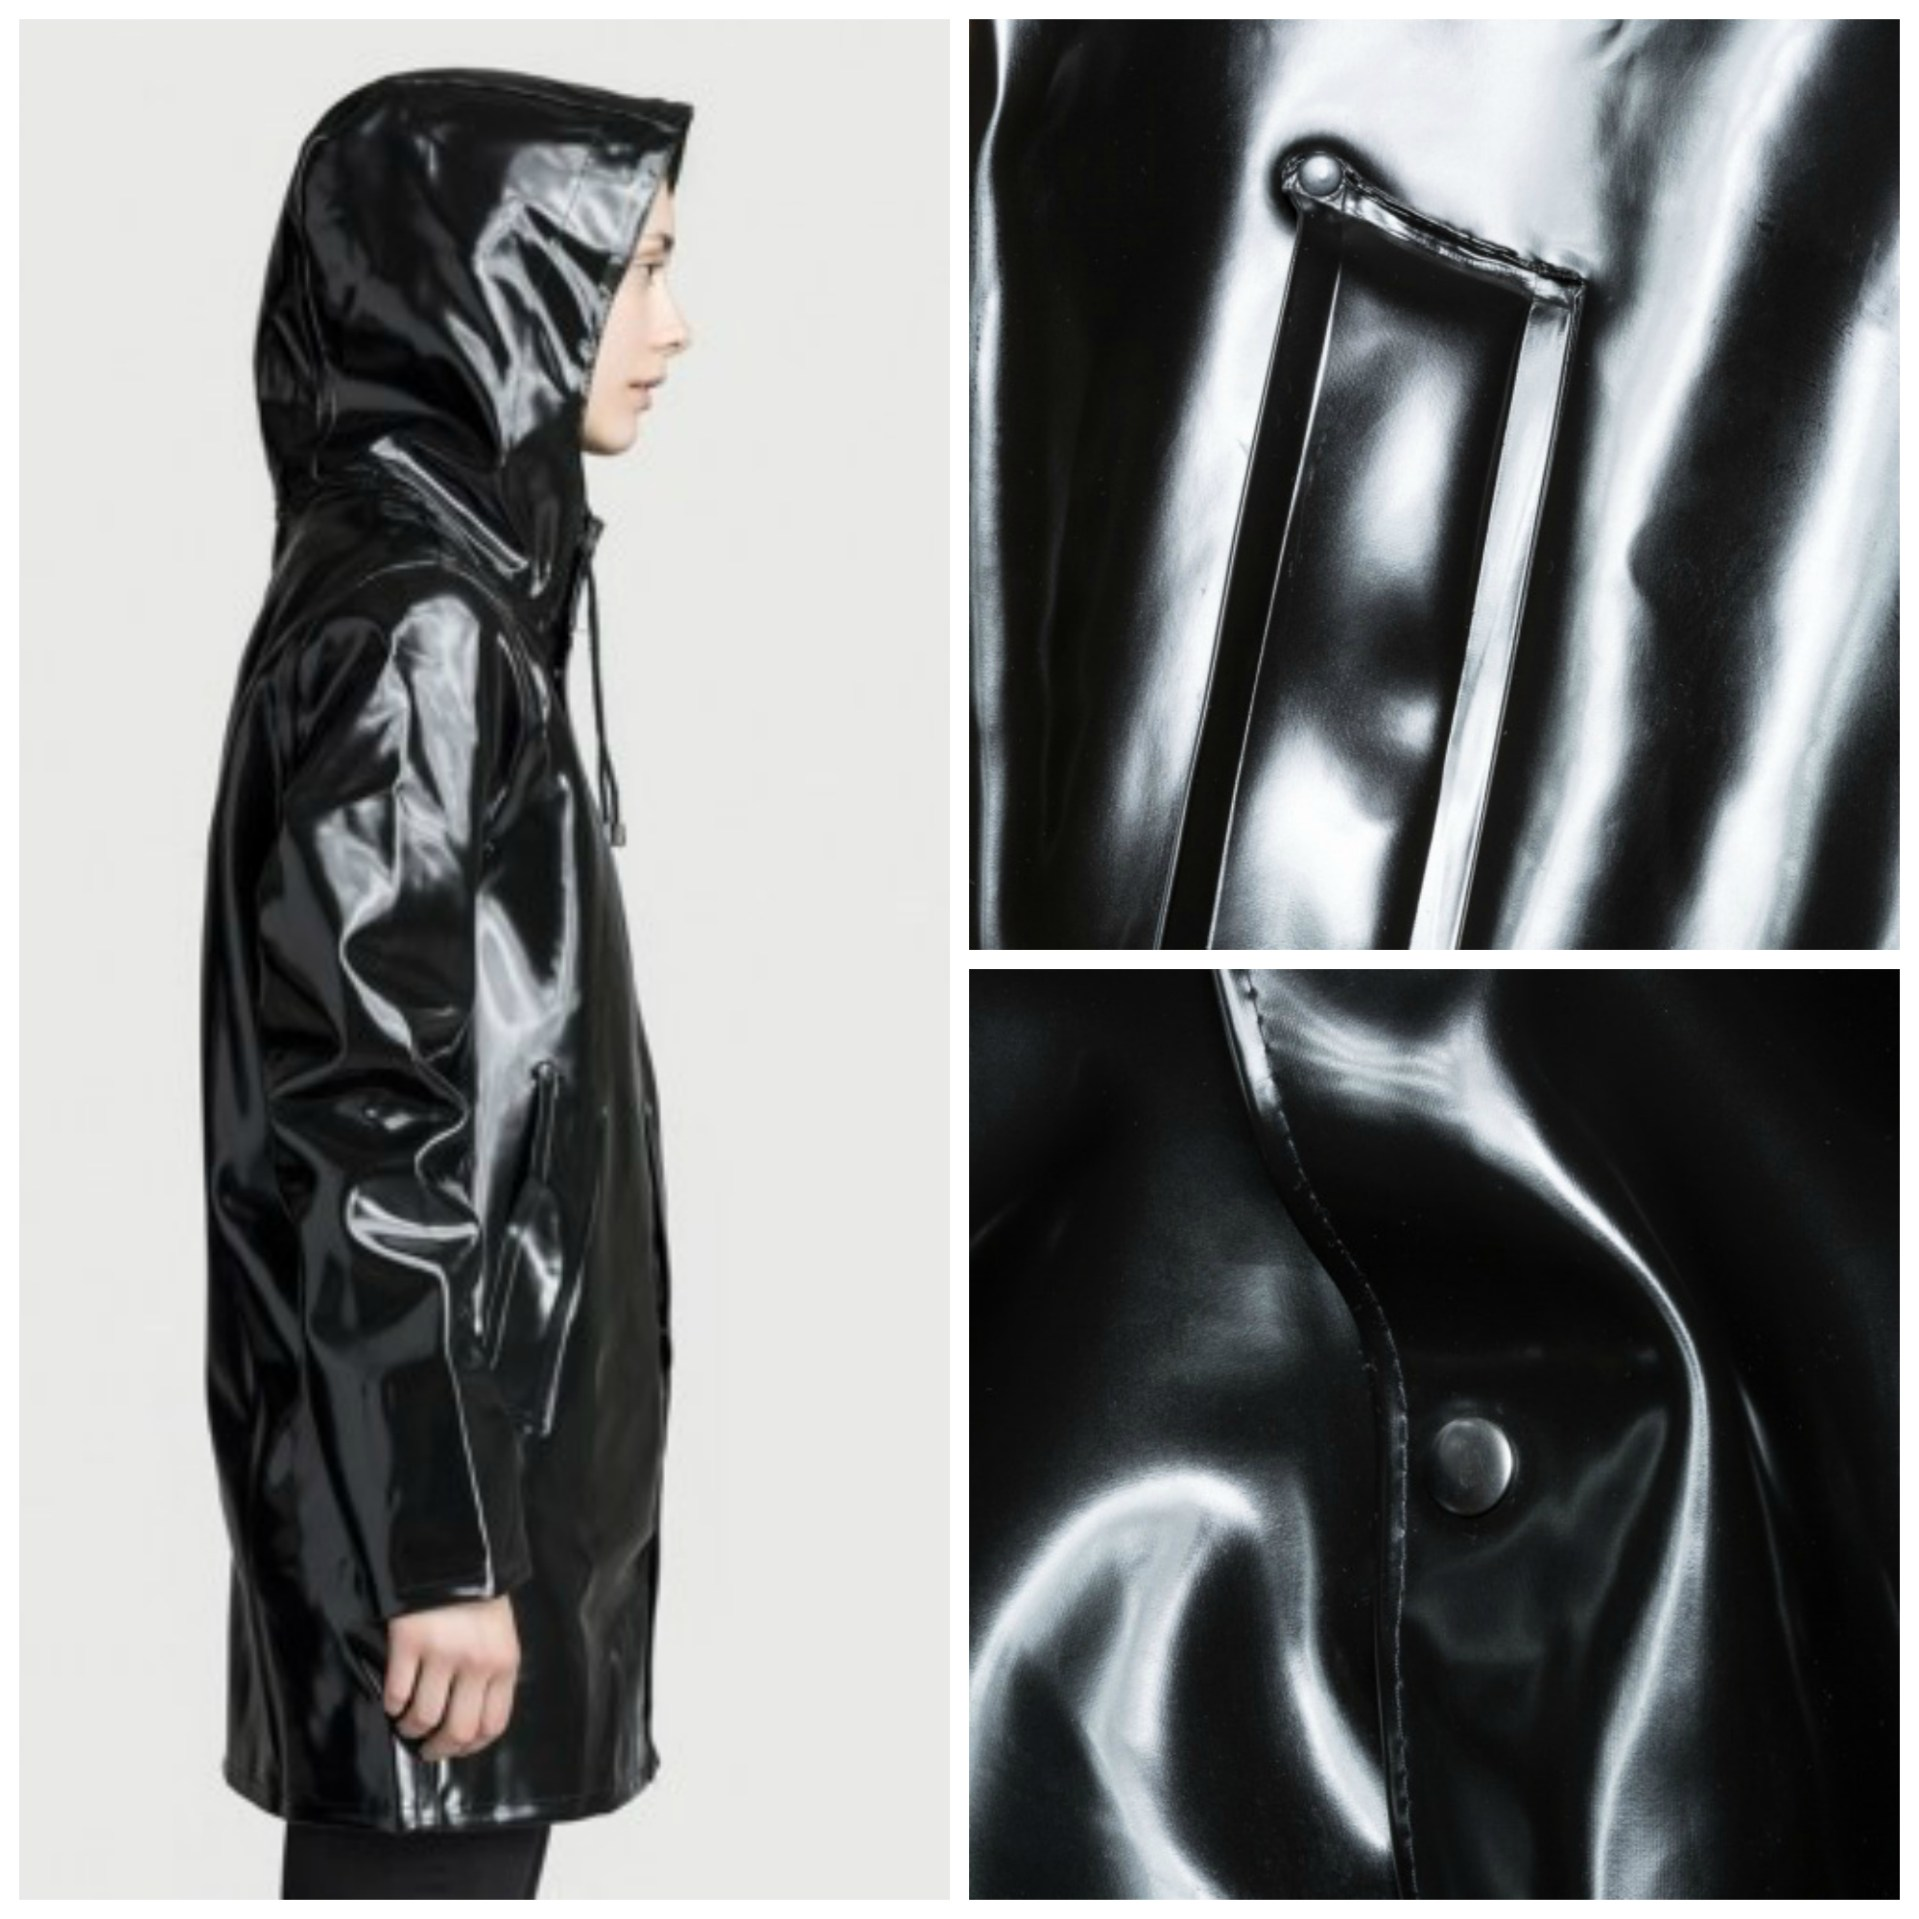 Masturbation rubber raincoat — pic 4